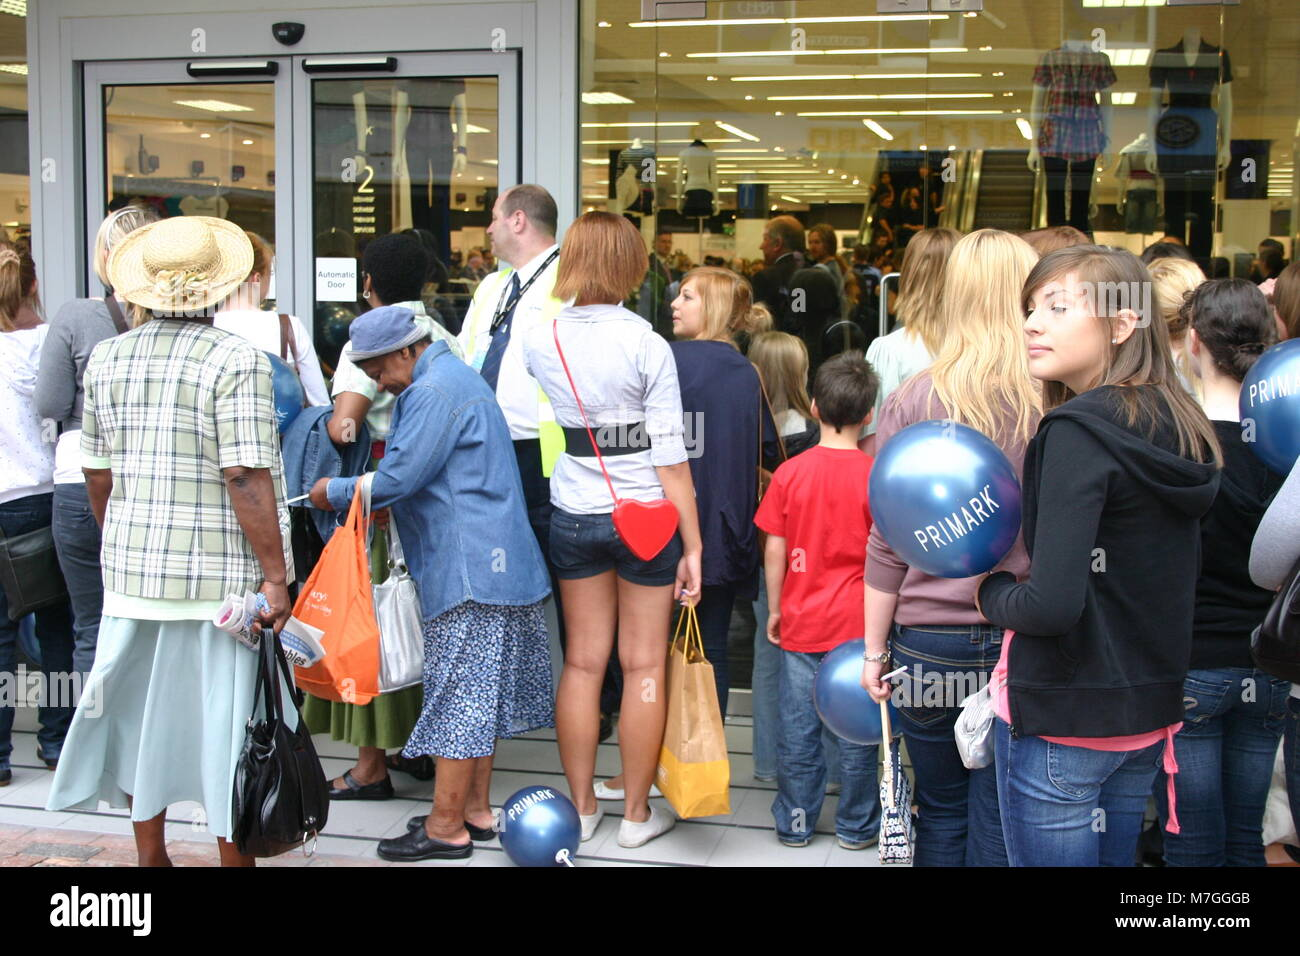 The sales, with customers queuing outside Primark, Derby, UK - Stock Image